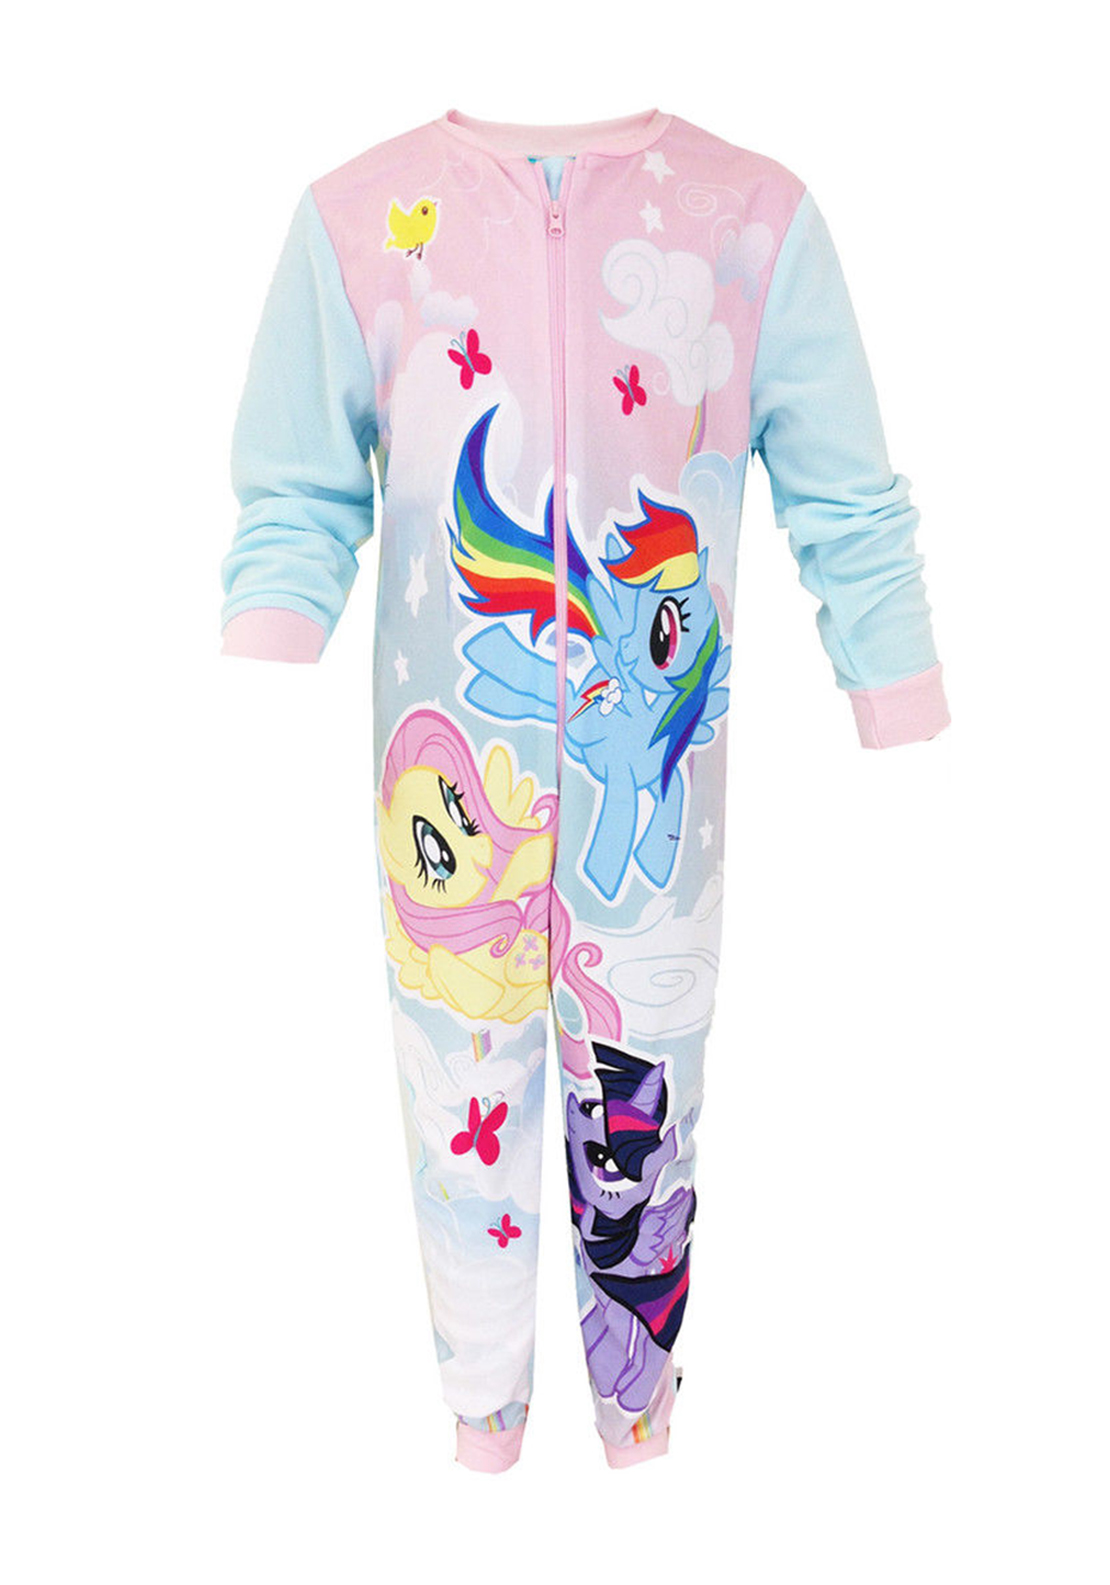 My Little Pony Girls Onsie Sleepsuit, Pink